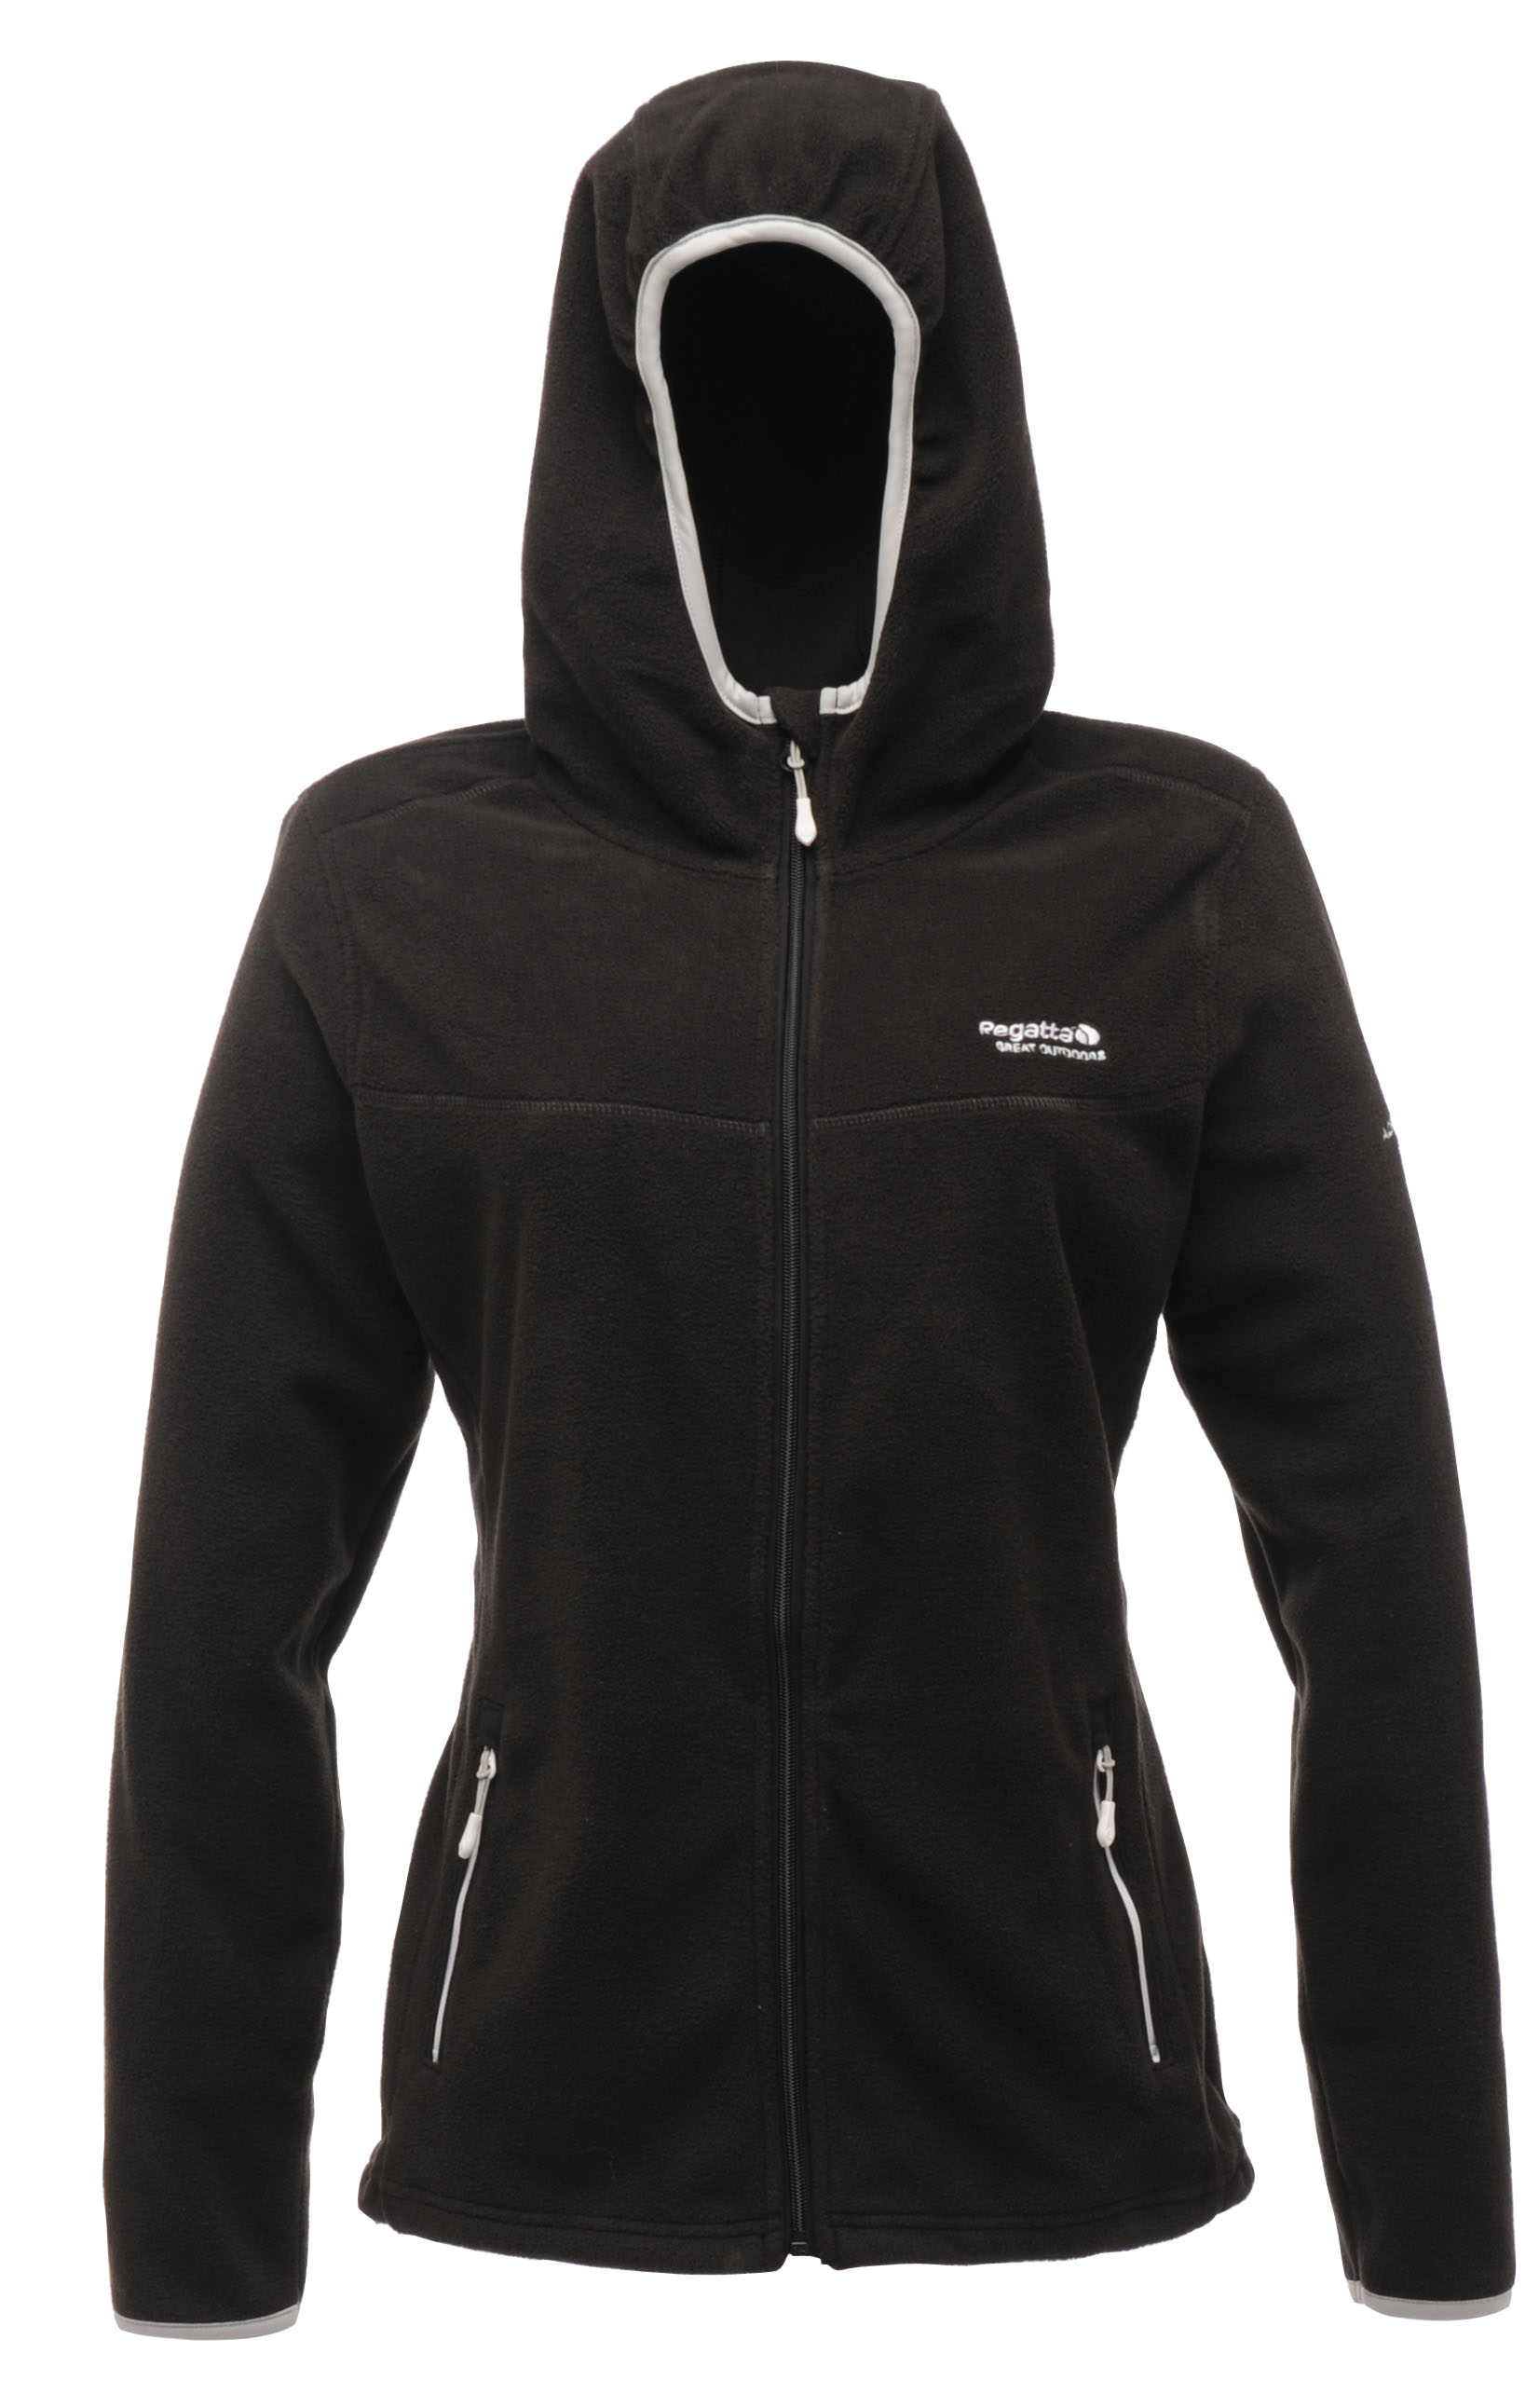 Regatta Serianna Women's Fleece Hoodie - Black